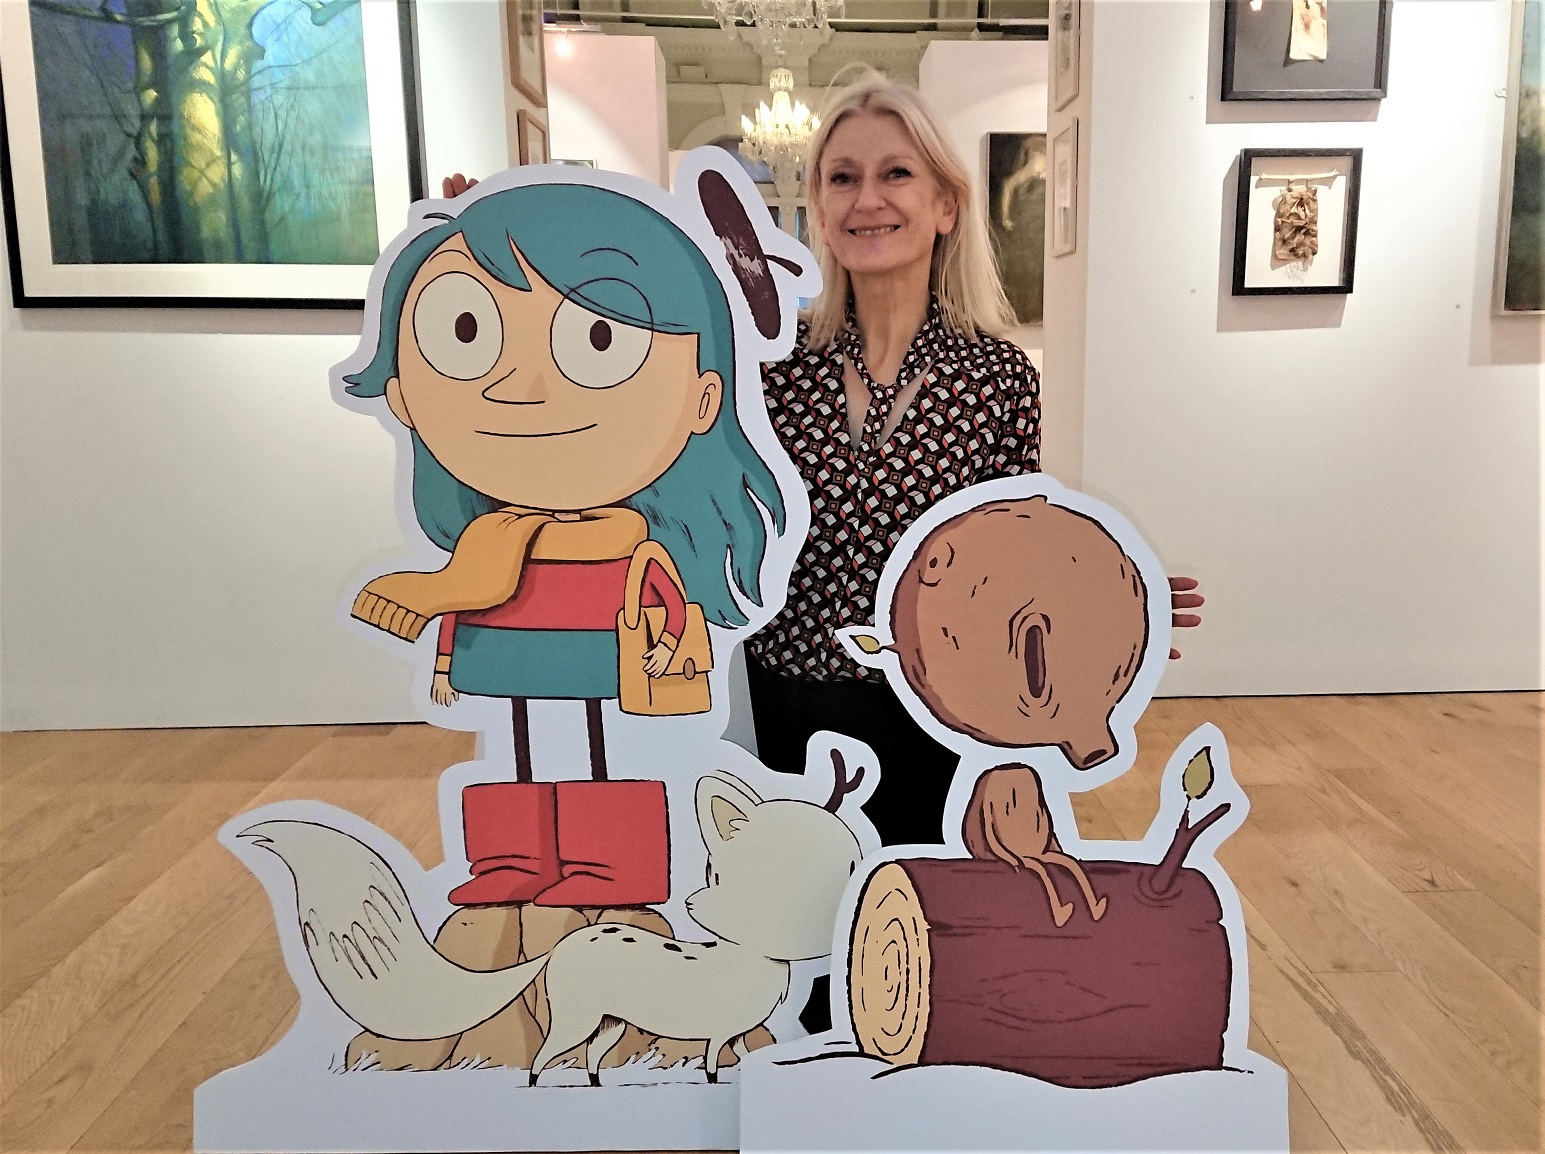 Karen Southworth, curator of the Mercer Gallery, with Hilda